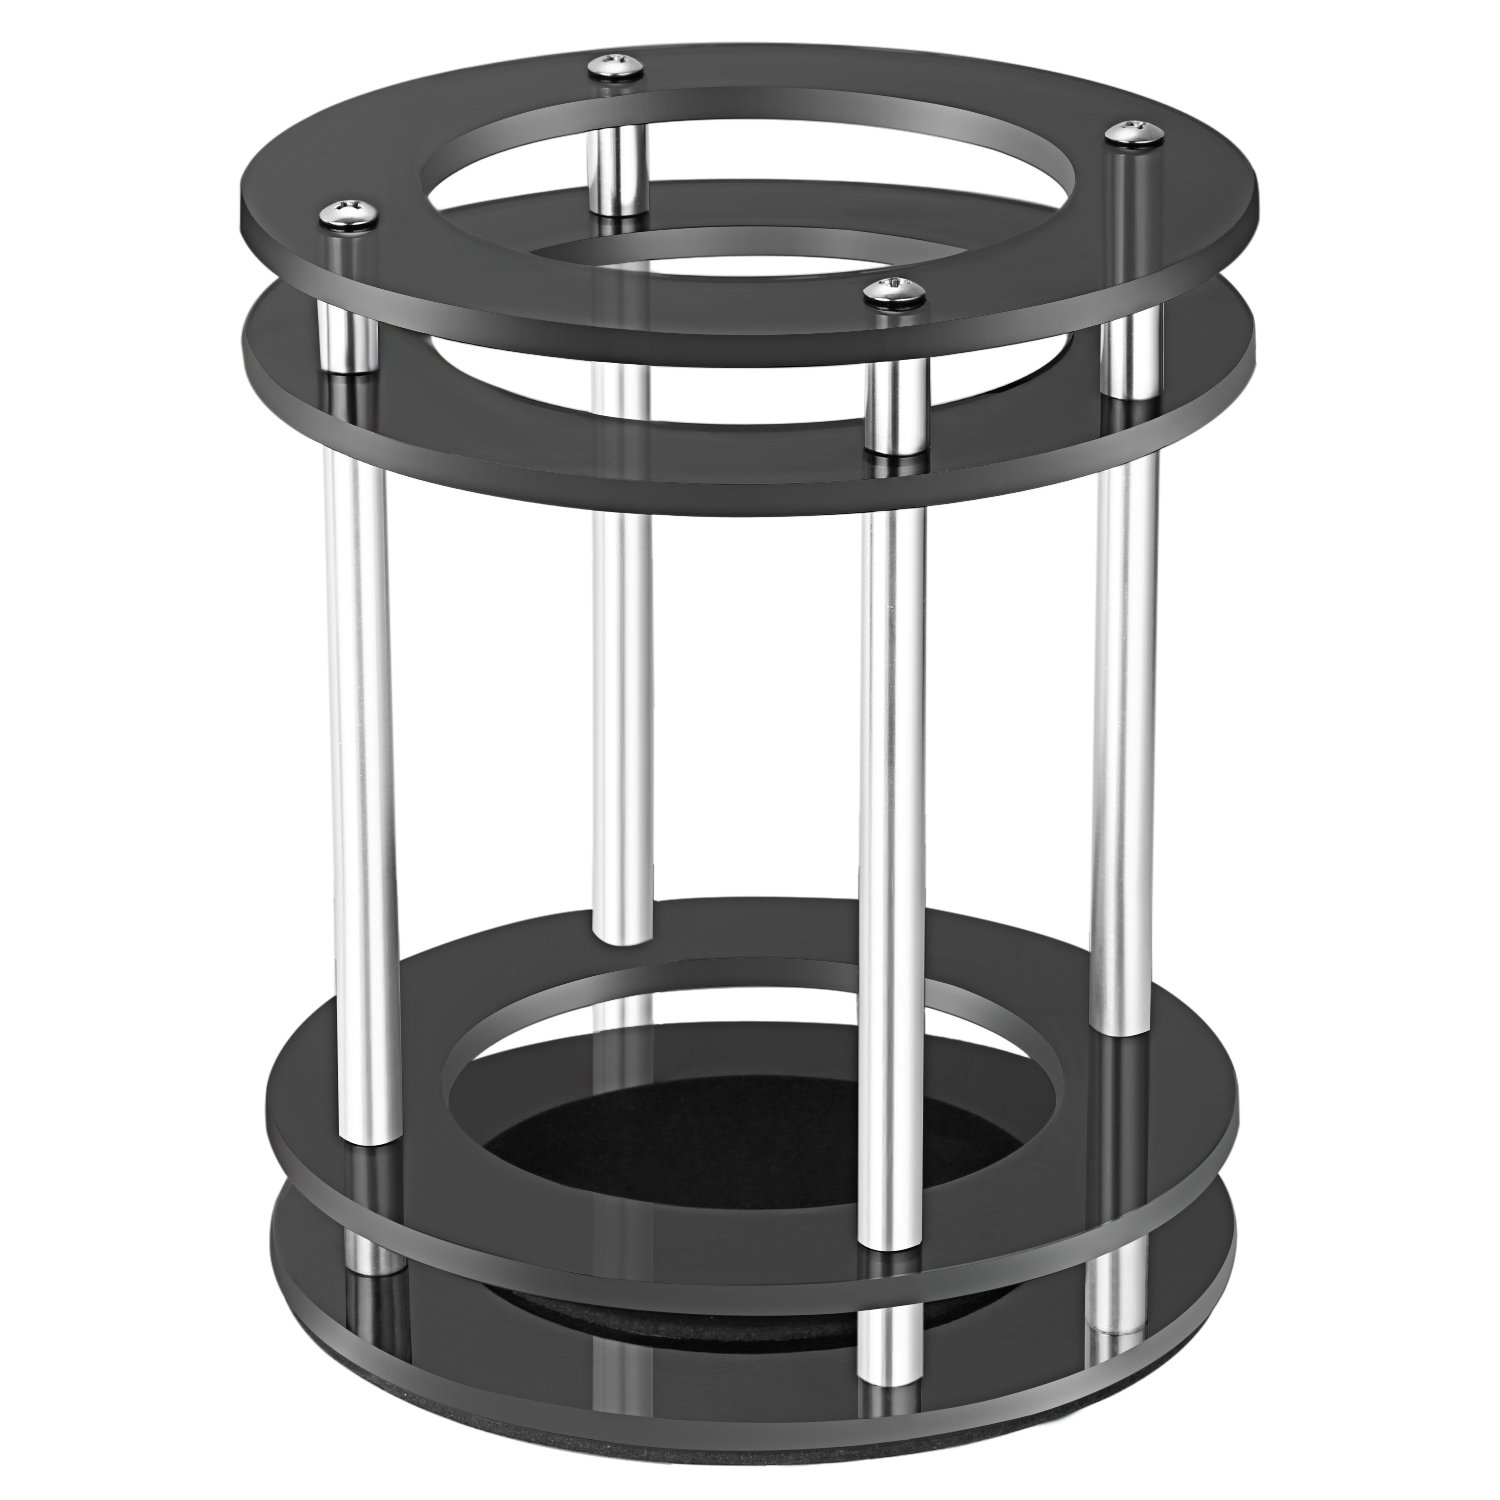 Neewer Speaker Guard for Amazon Echo UE Alexa Boom Speaker with Acrylic Glass Rings, Aluminum Alloy Columns, Stainless Screws, Soft Cushion, Enhanced Strength and Stability to Protect Echo (Black) 40089137